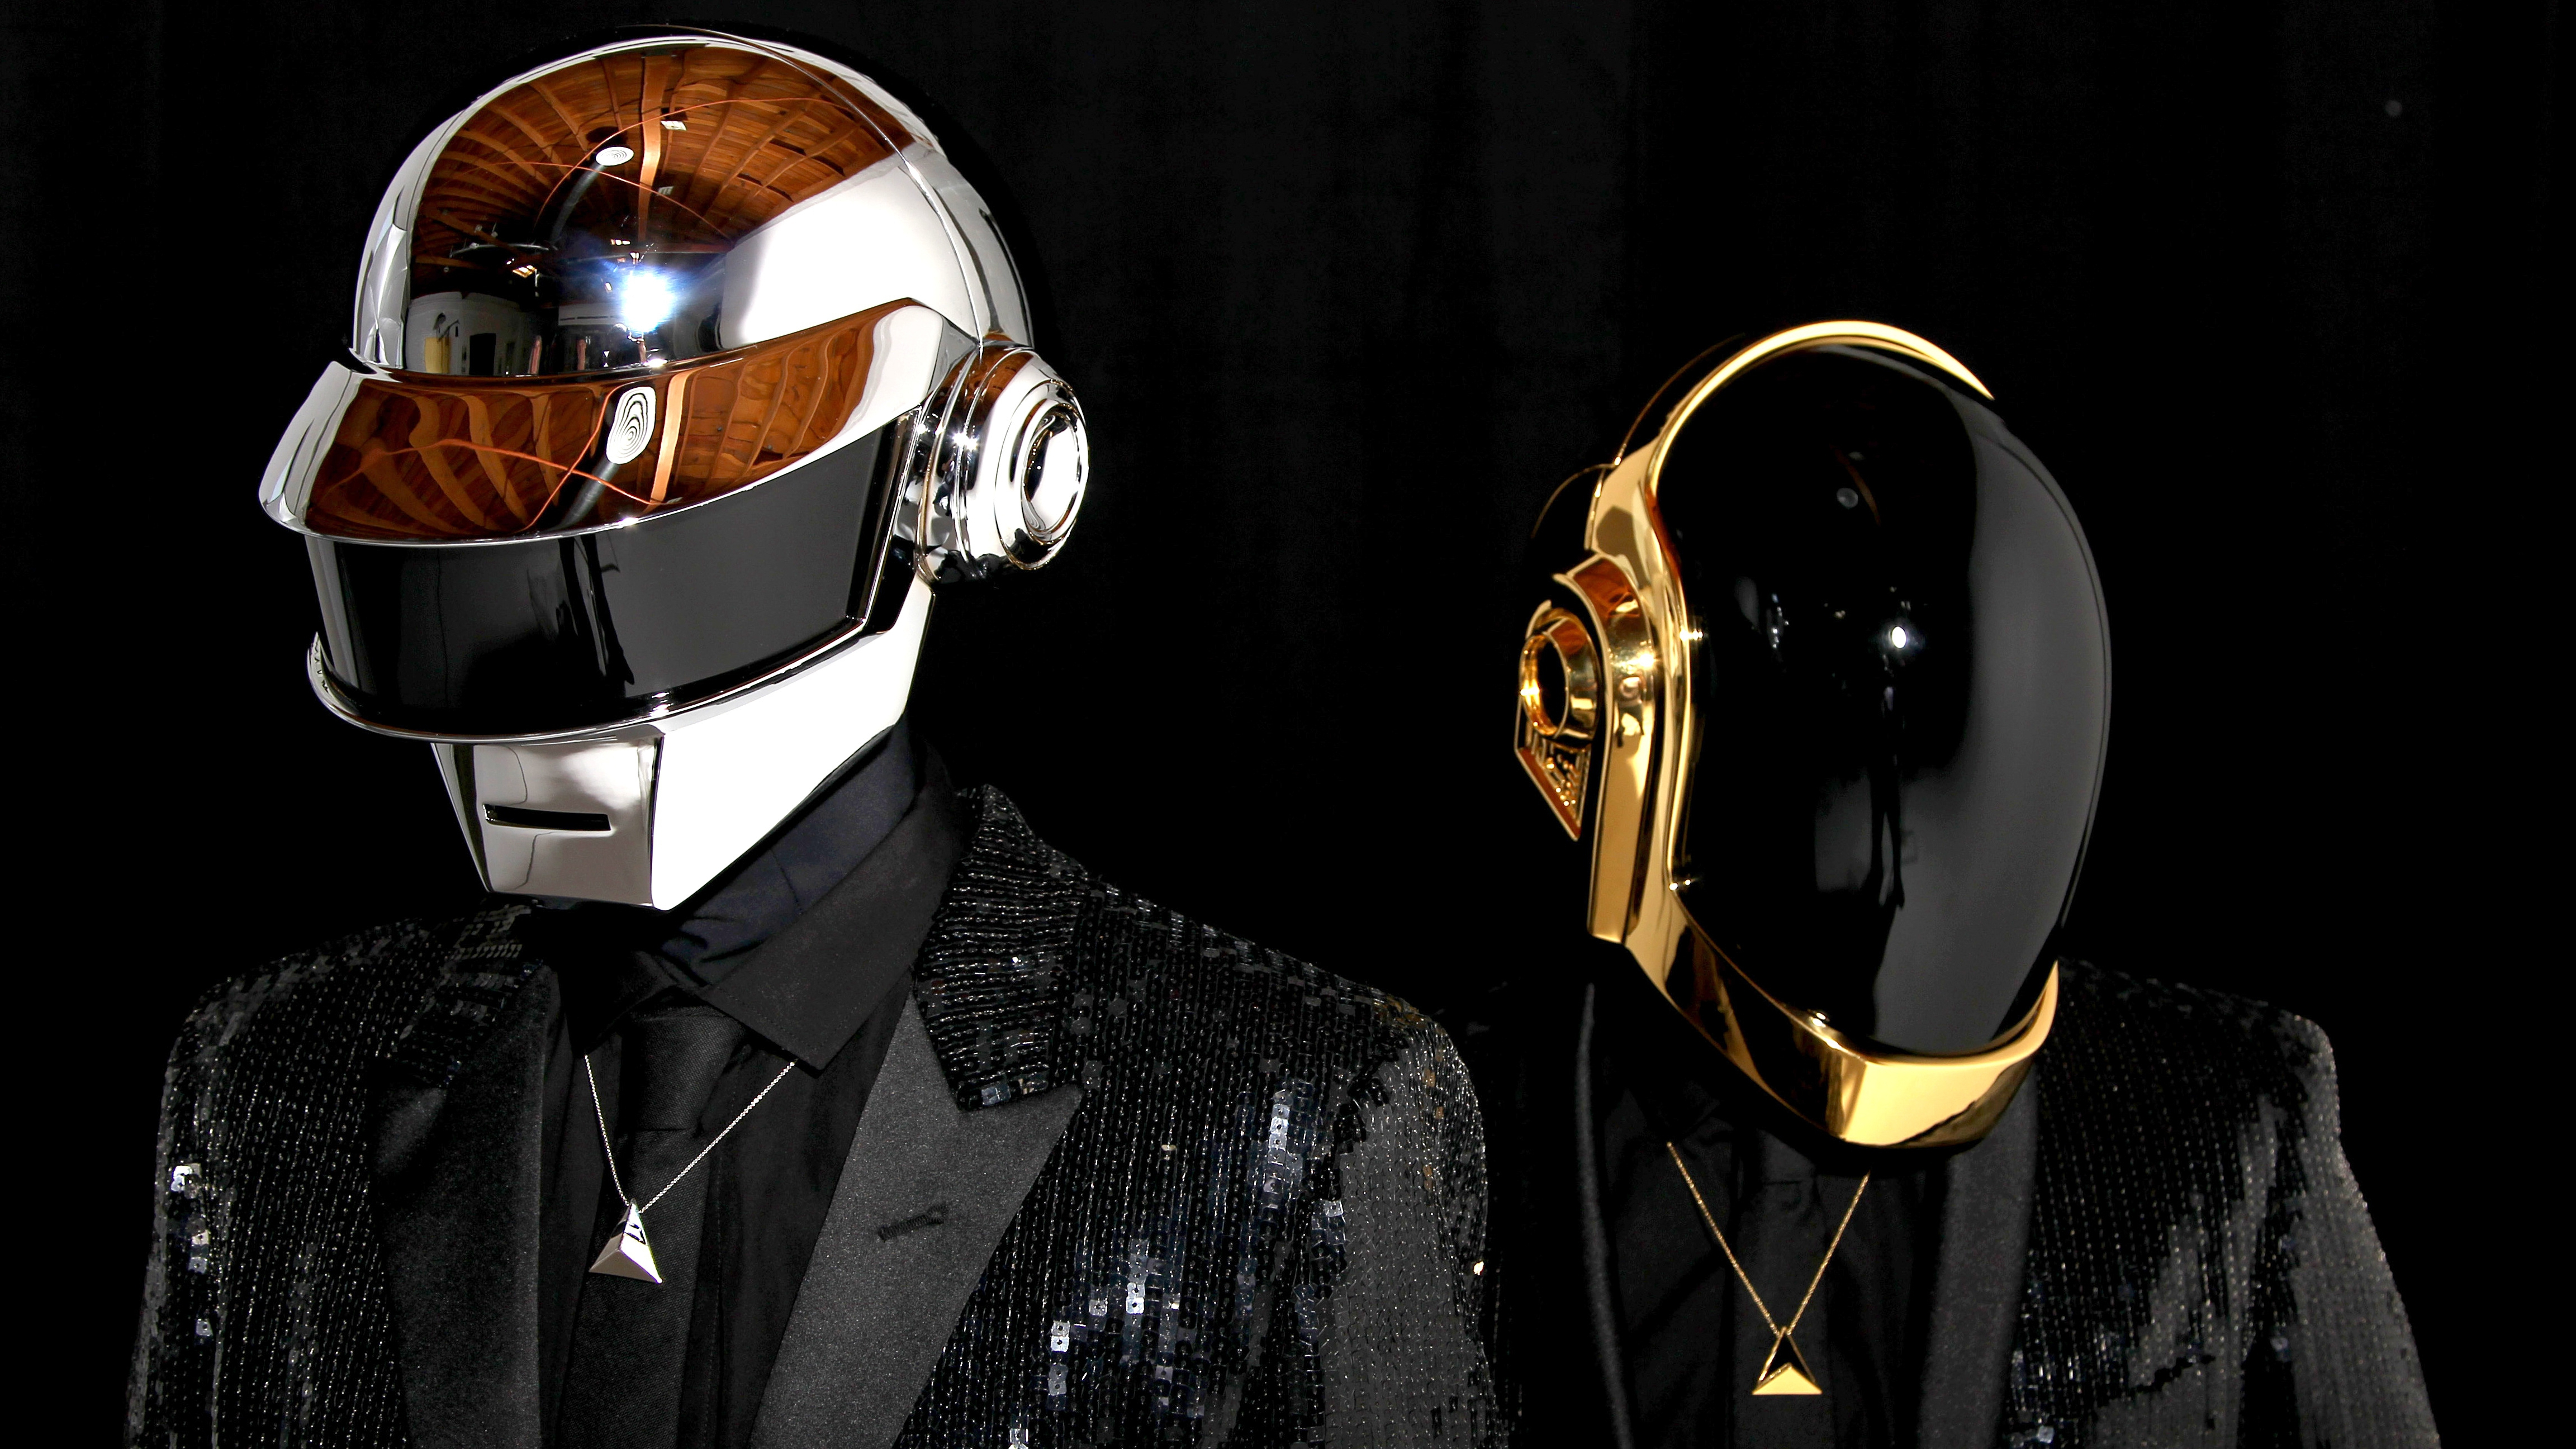 Daft Punk Wallpapers Images Photos Pictures Backgrounds